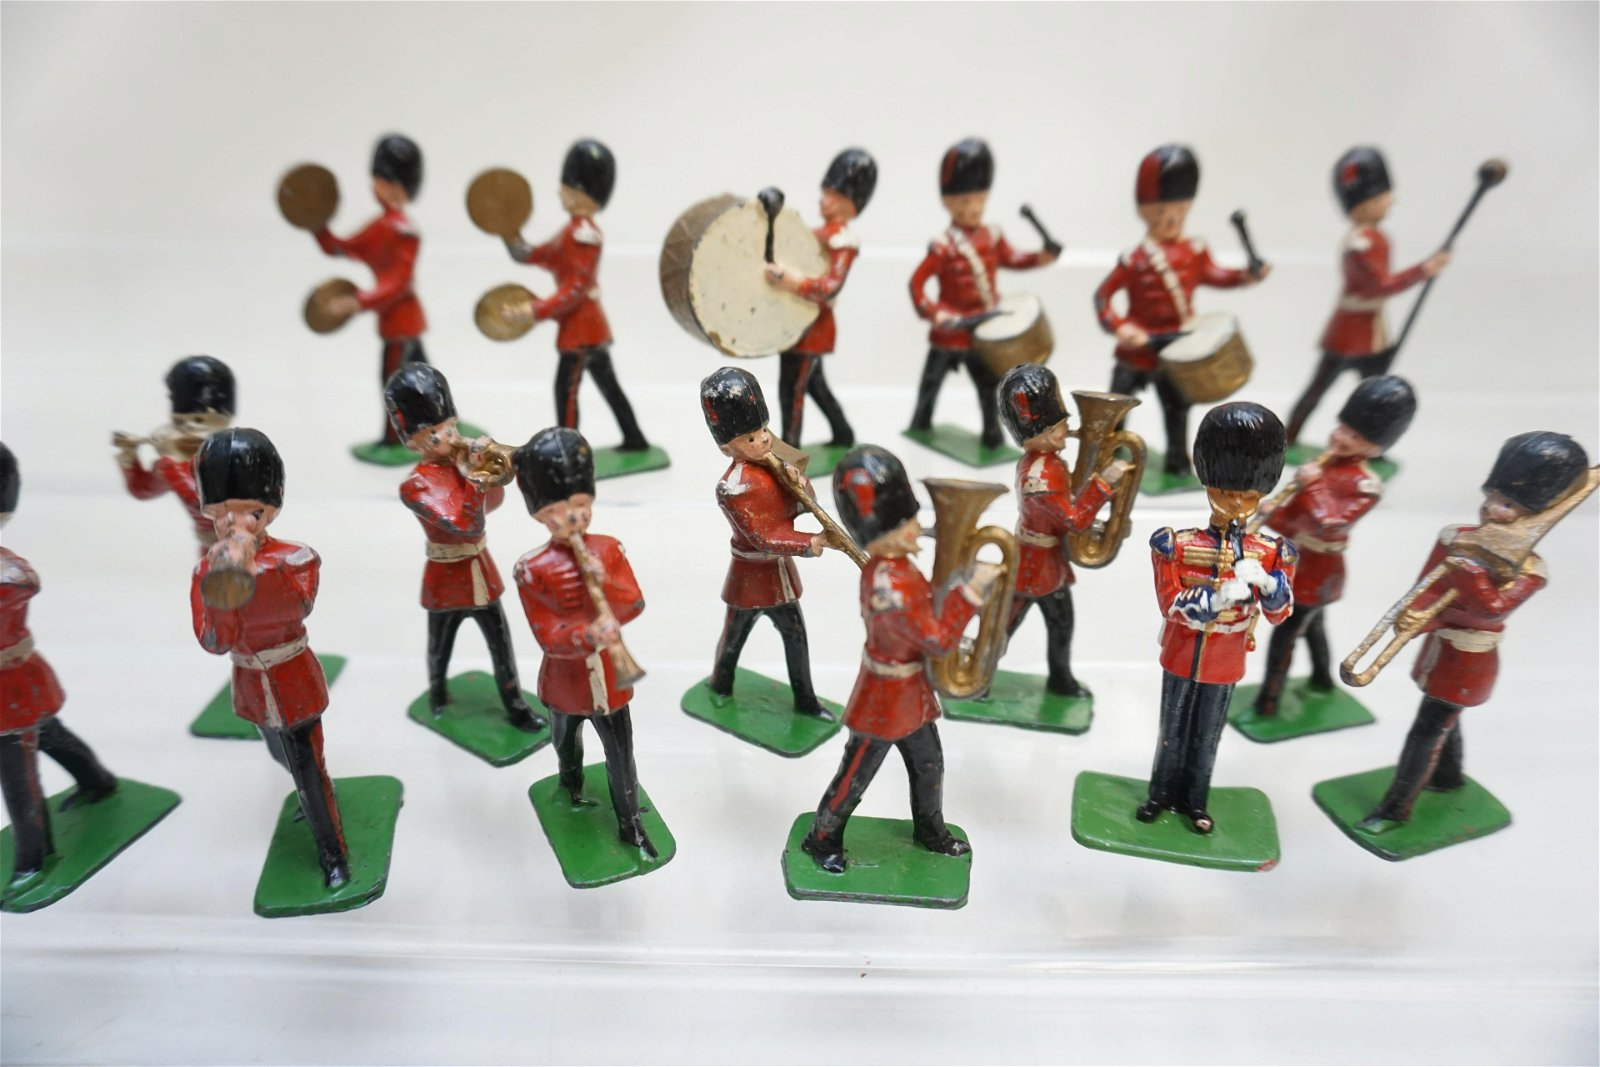 17 PC J. HILL ENGLAND LEAD MILITARY MARCHING BAND